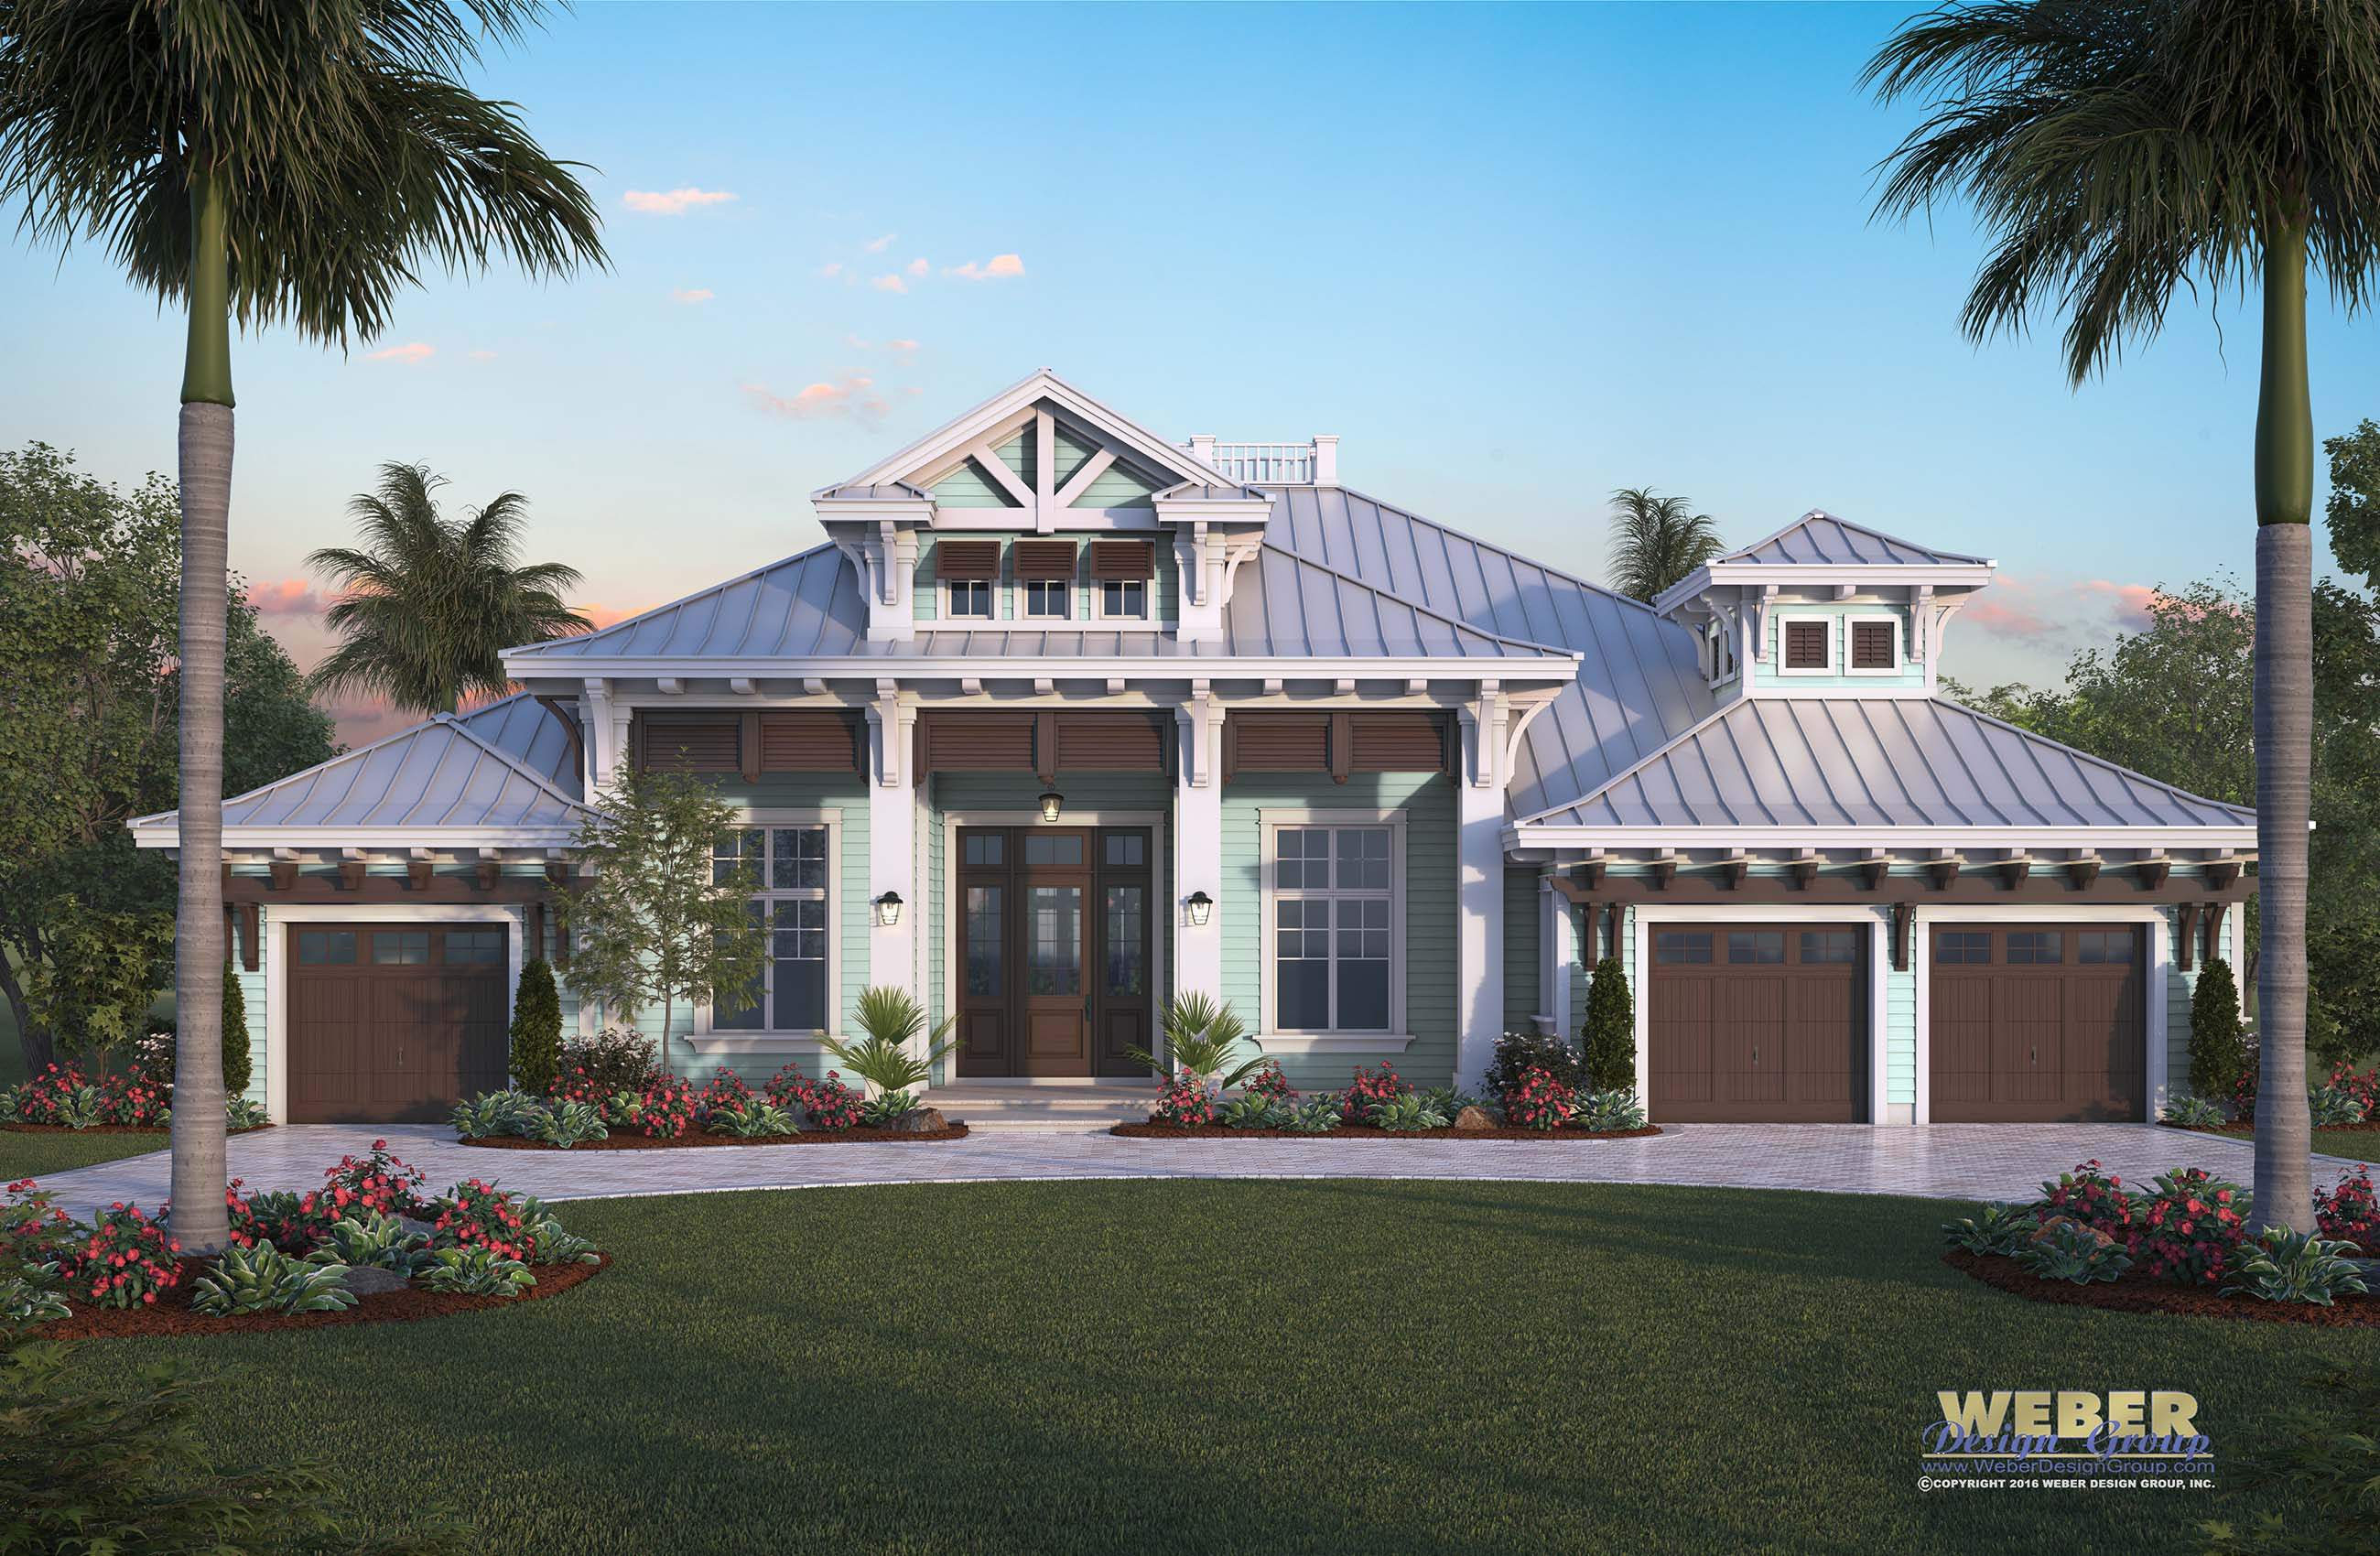 Harbor house plan luxury caribbean beach home outdoor for Home design images